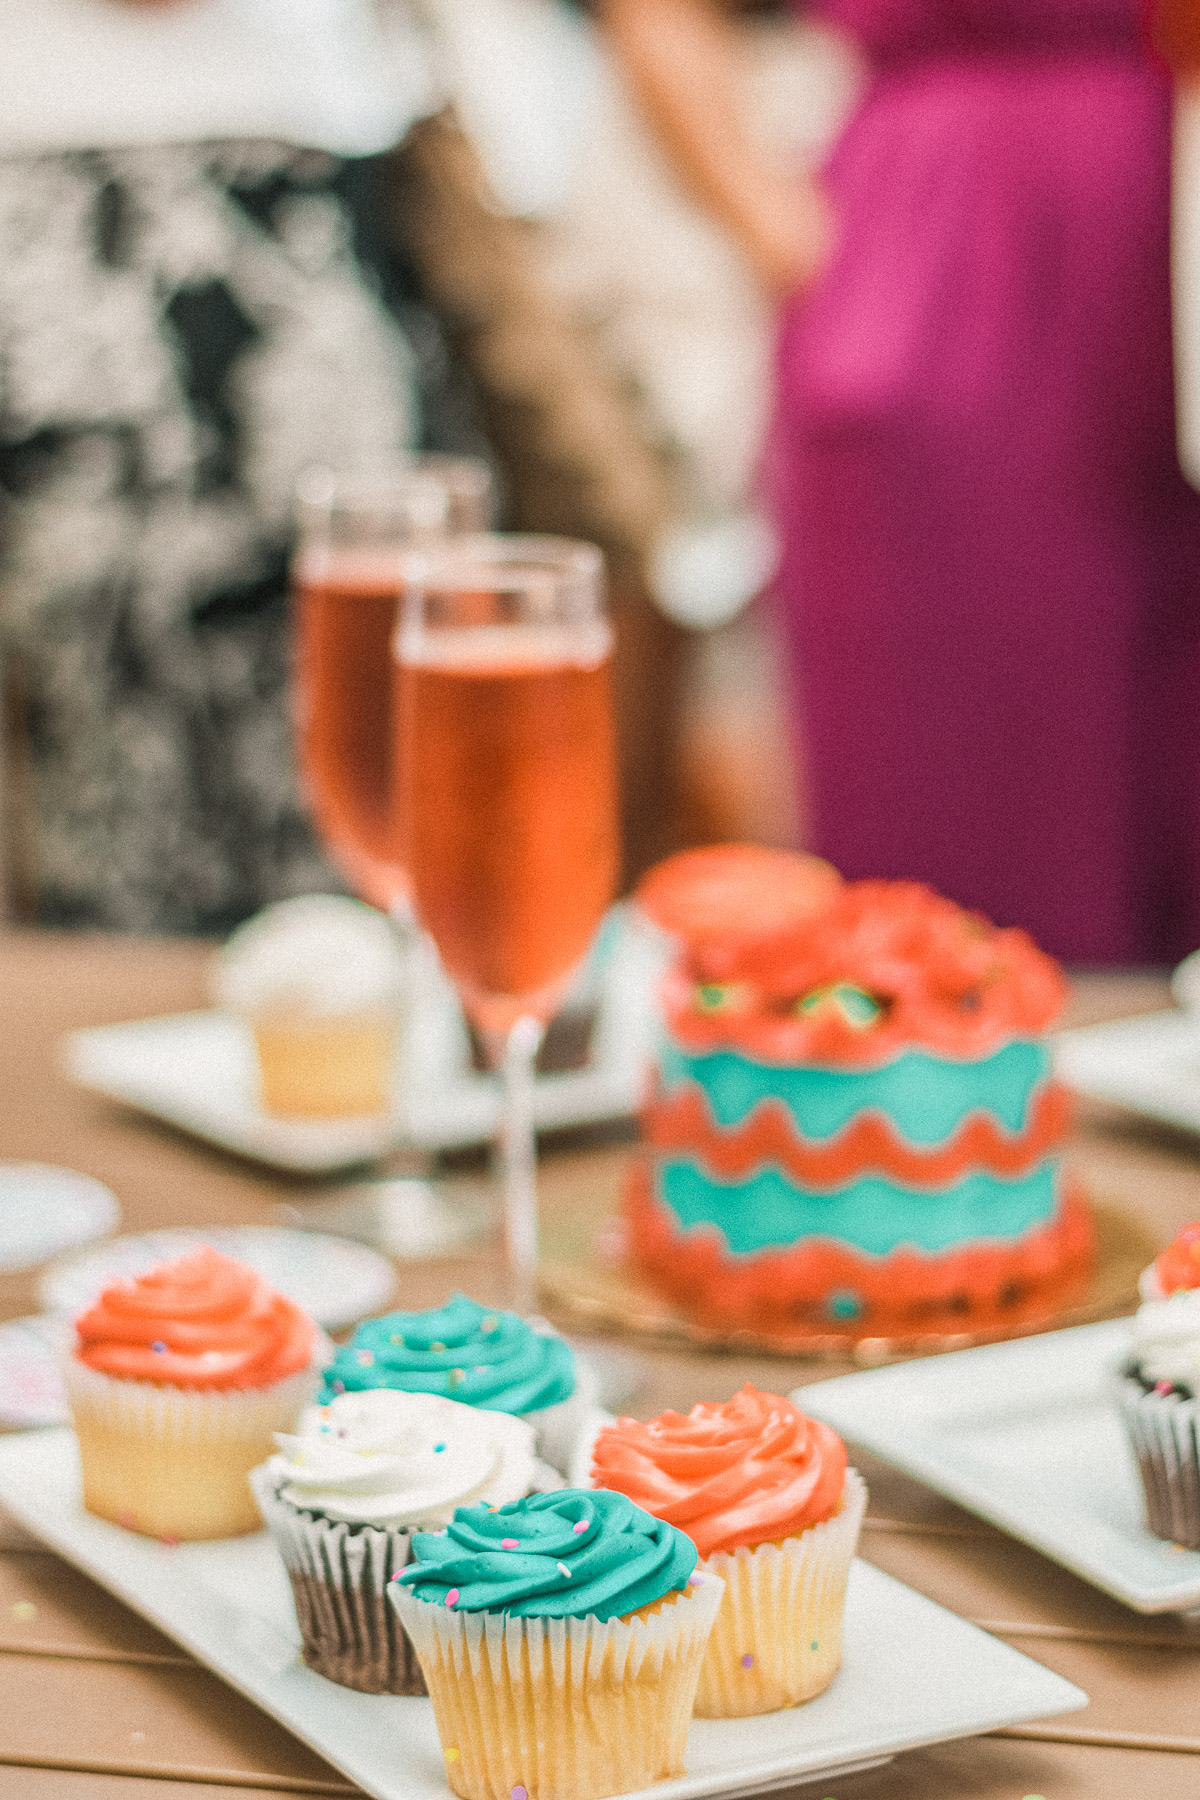 cupcakes and rose